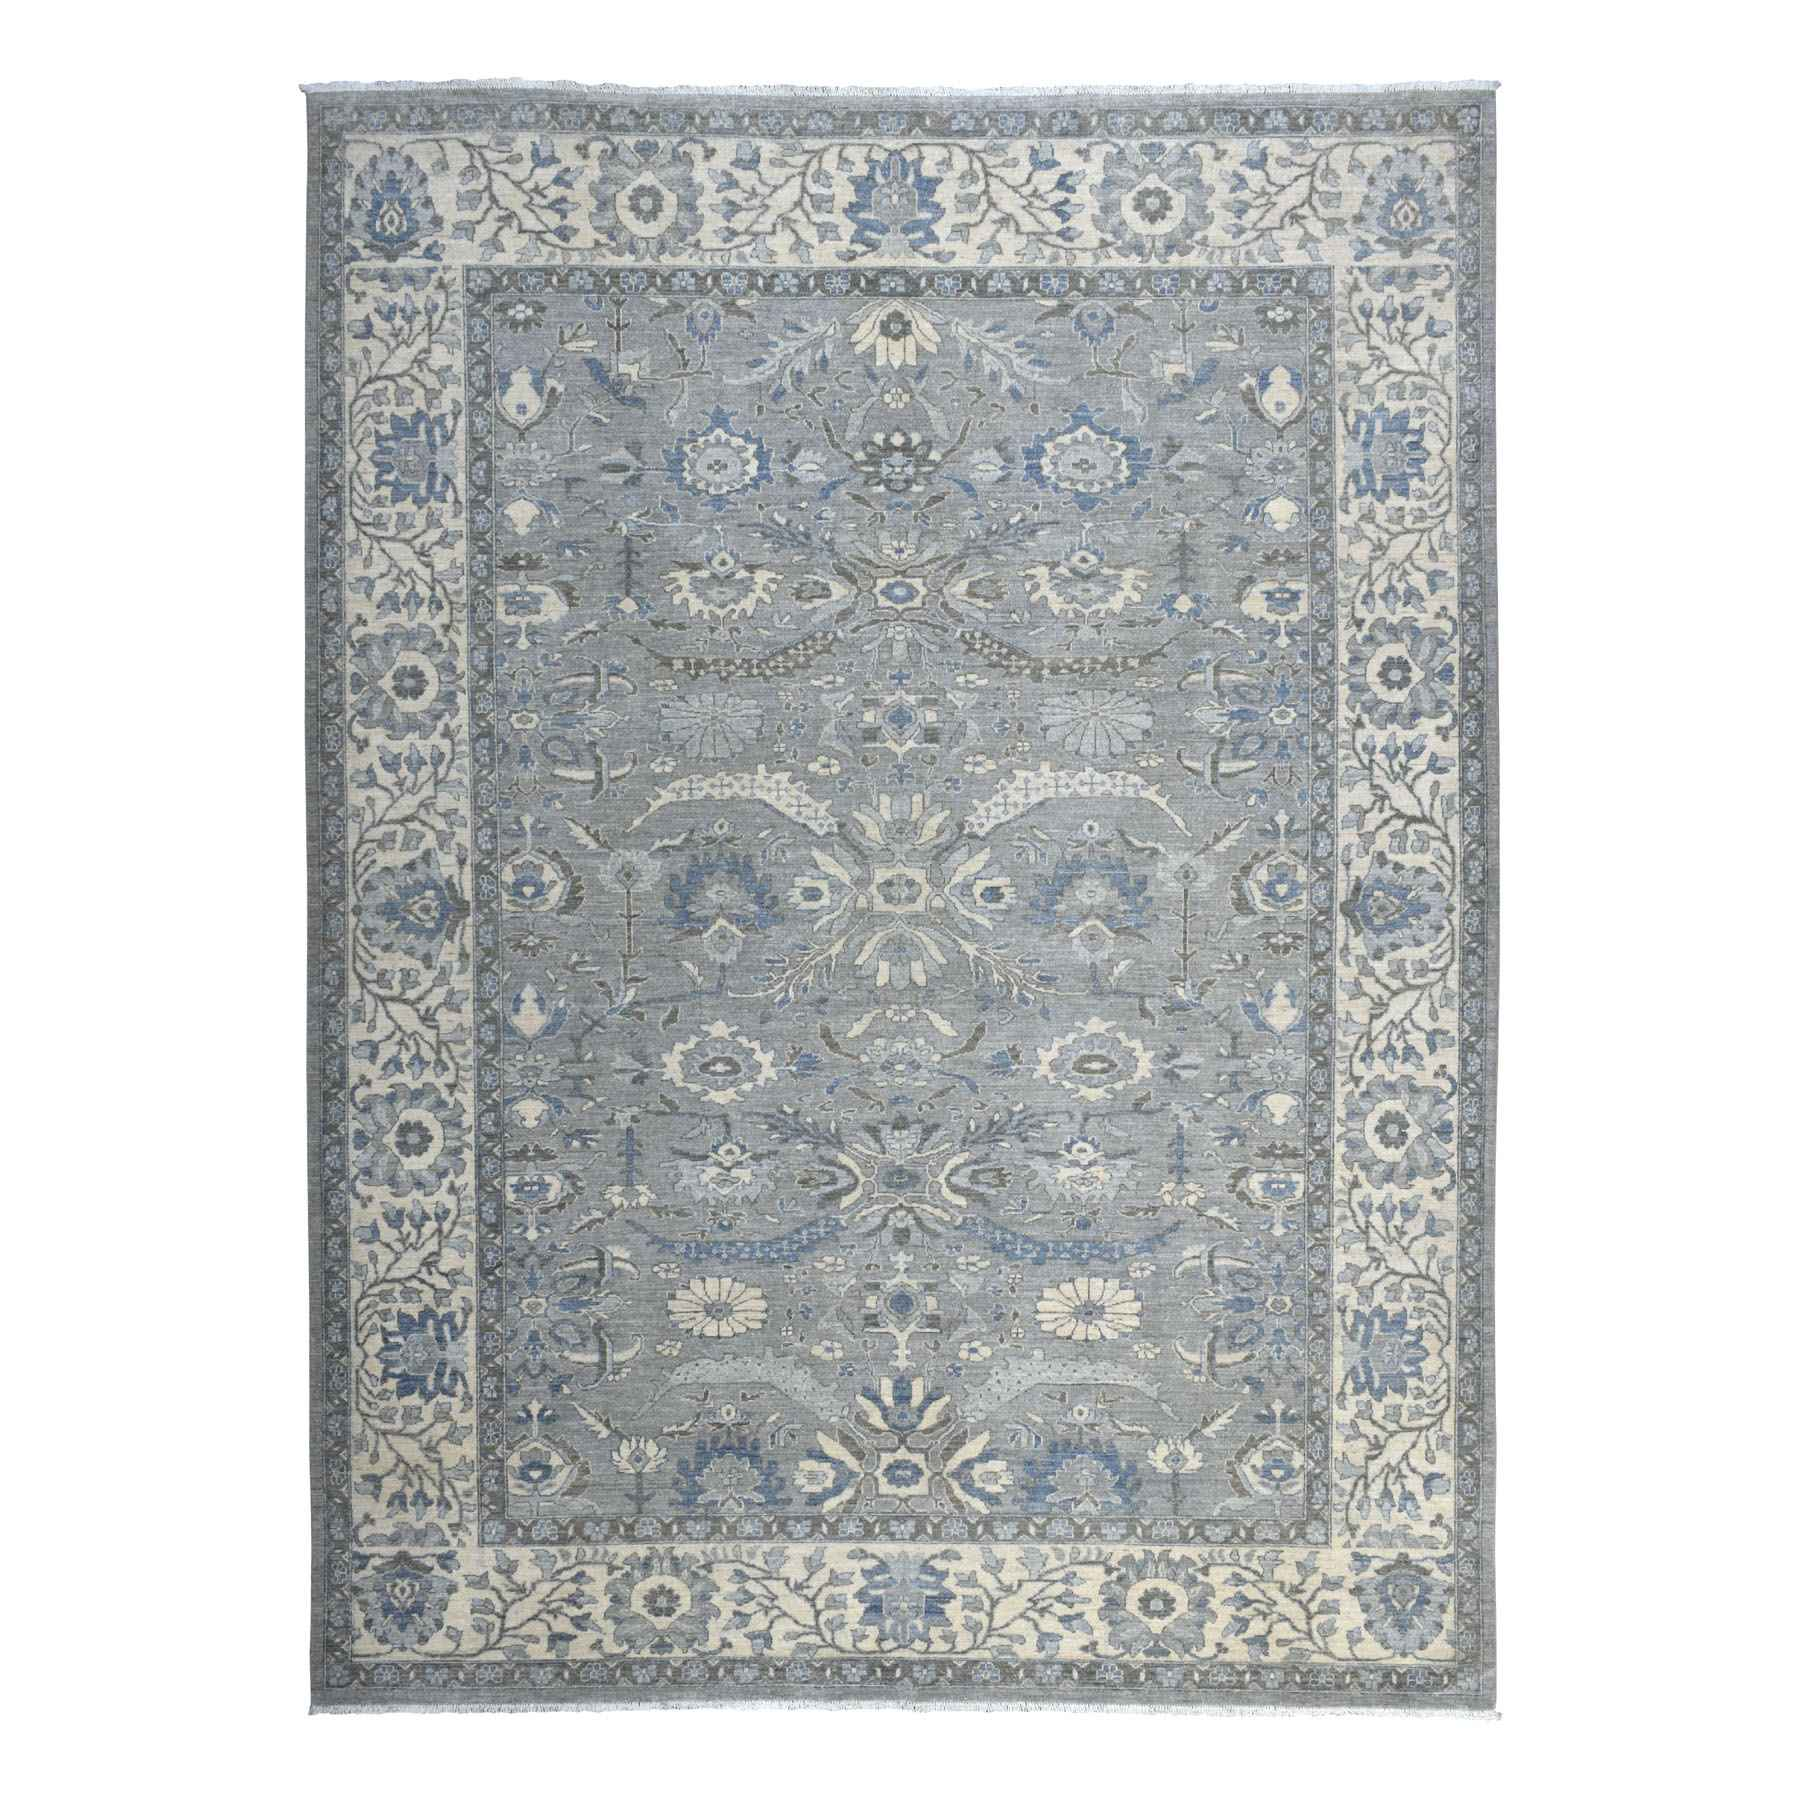 Oushak-And-Peshawar-Hand-Knotted-Rug-271040